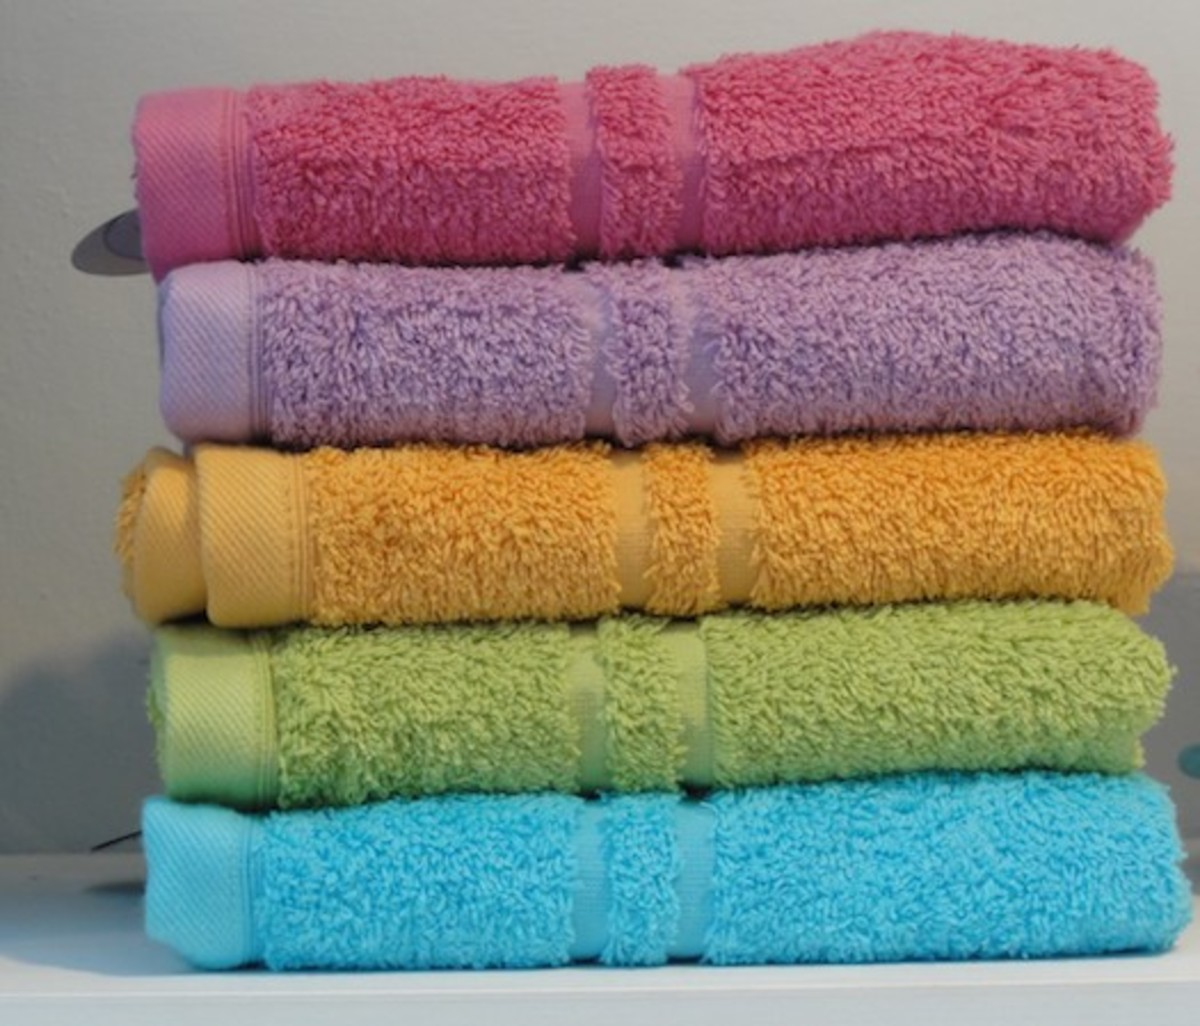 A stack of colored towels